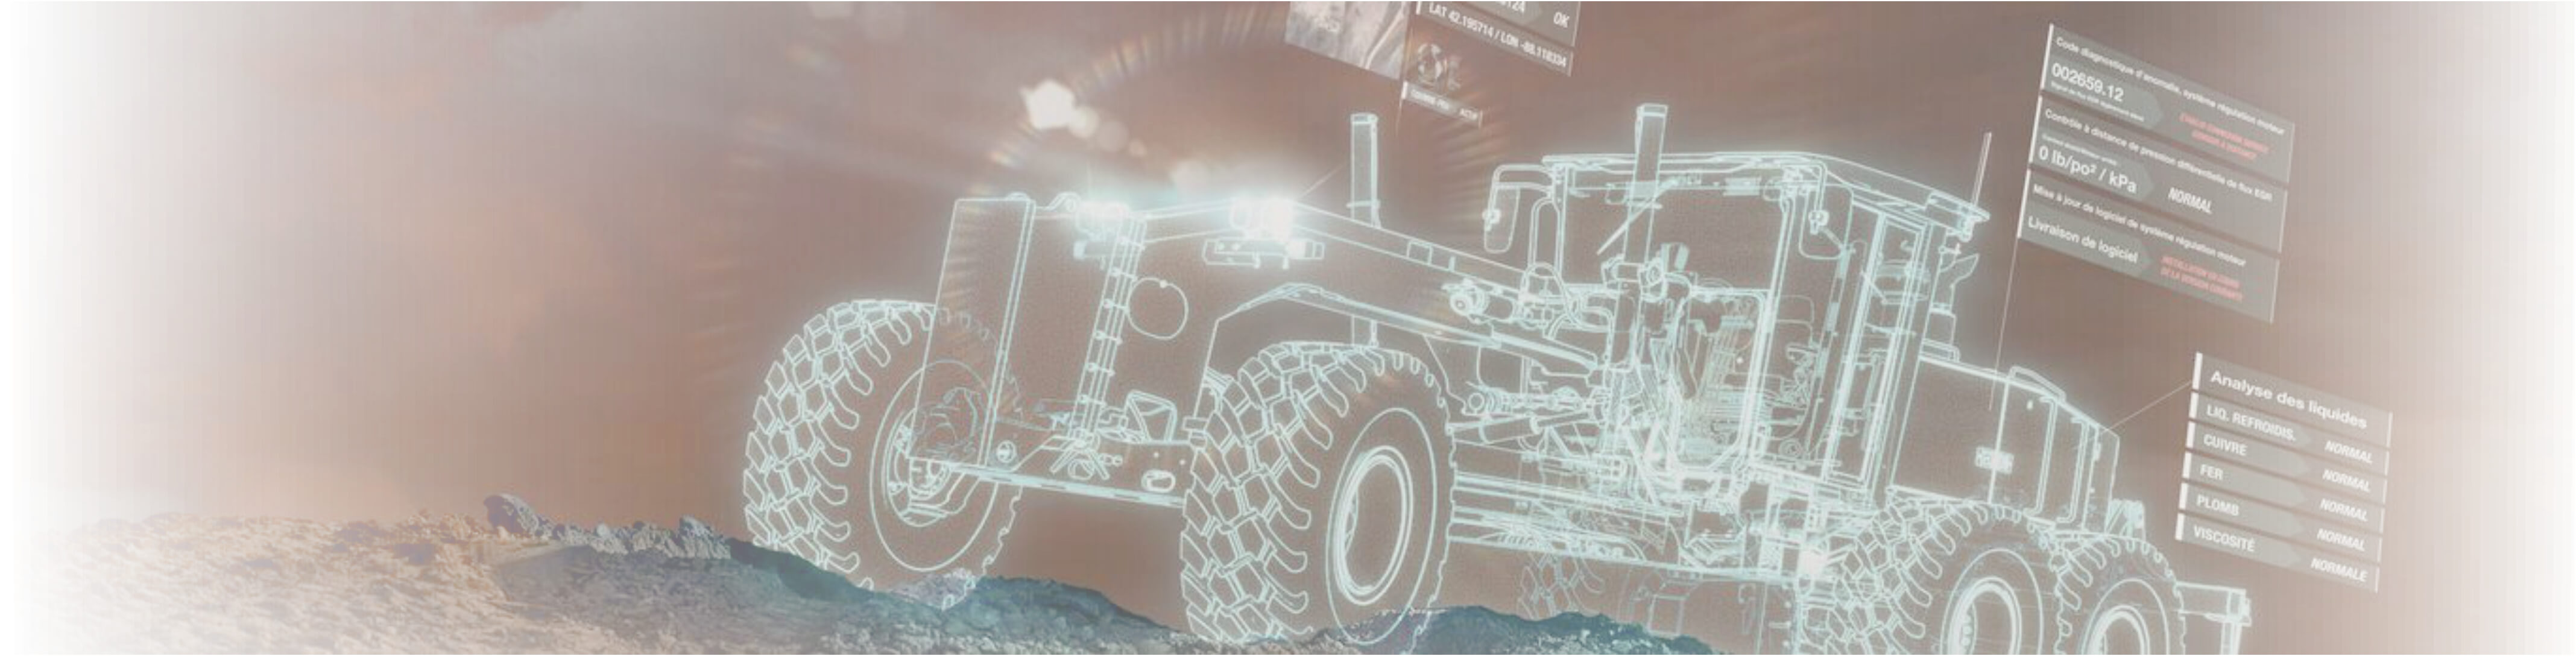 holograph motor grader with worksight notifications on jobsite